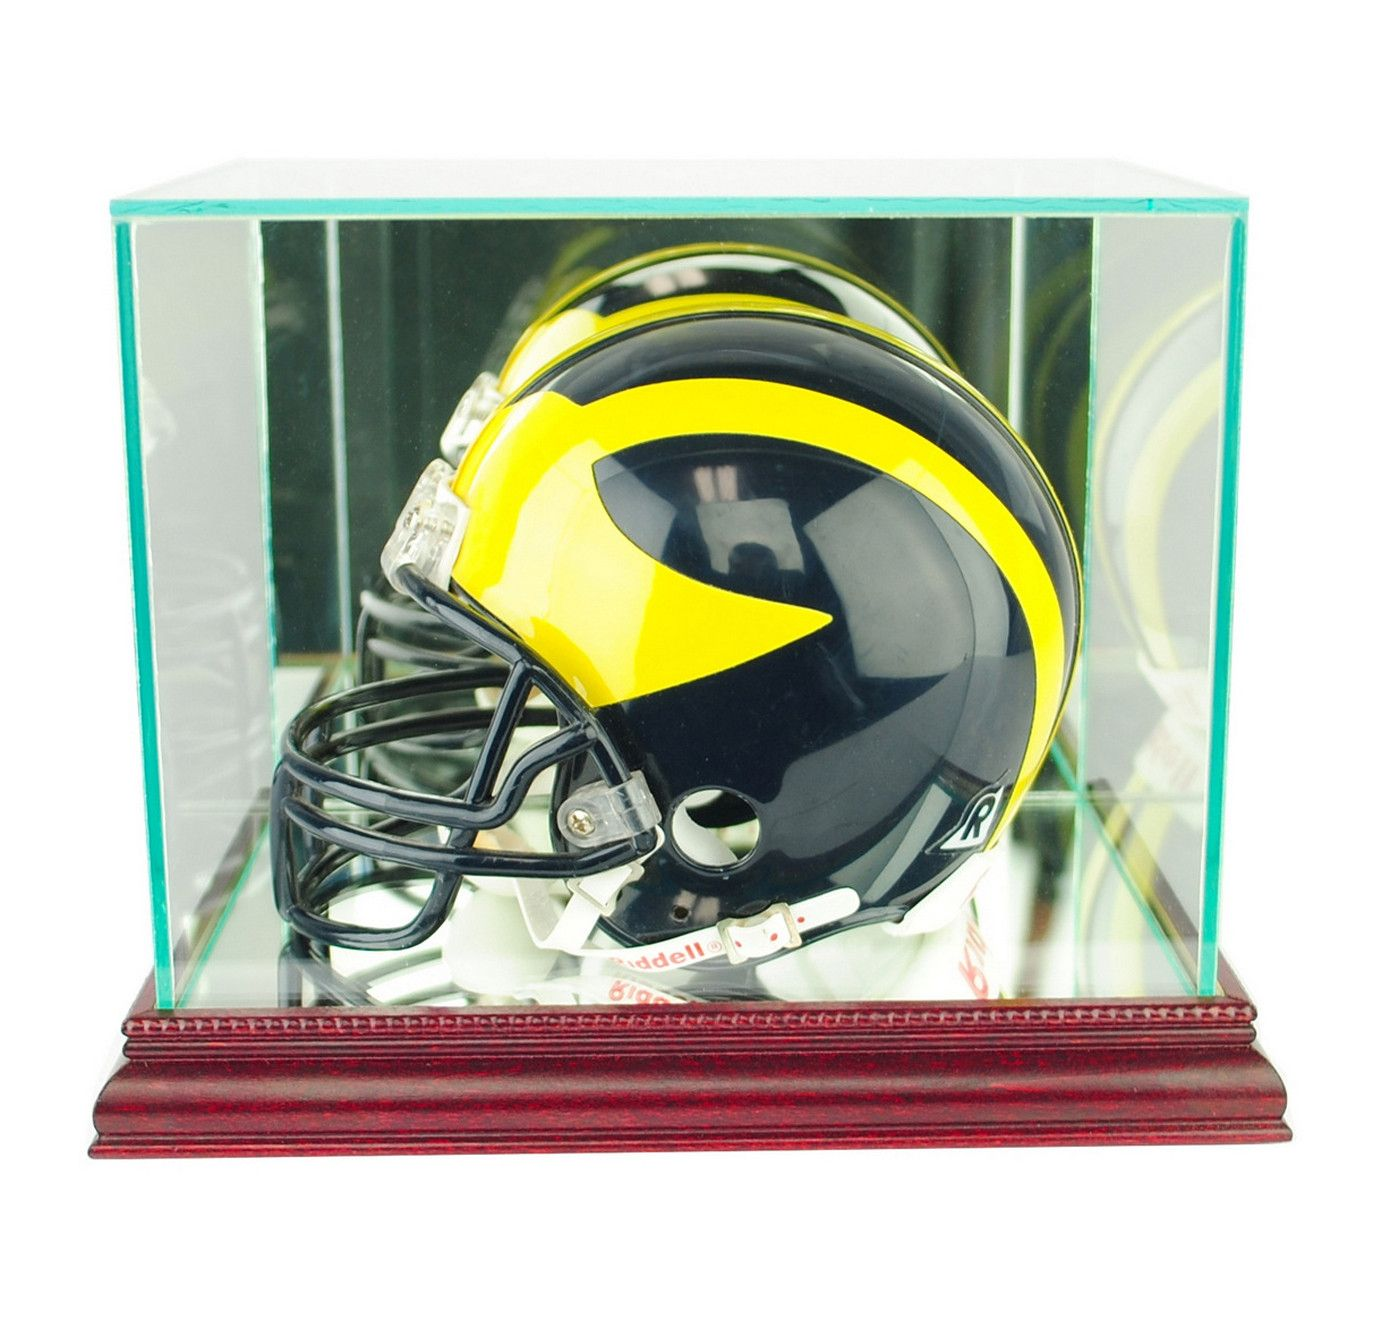 Proudly Display Your Autographed Mini Helmet In Our All Glass